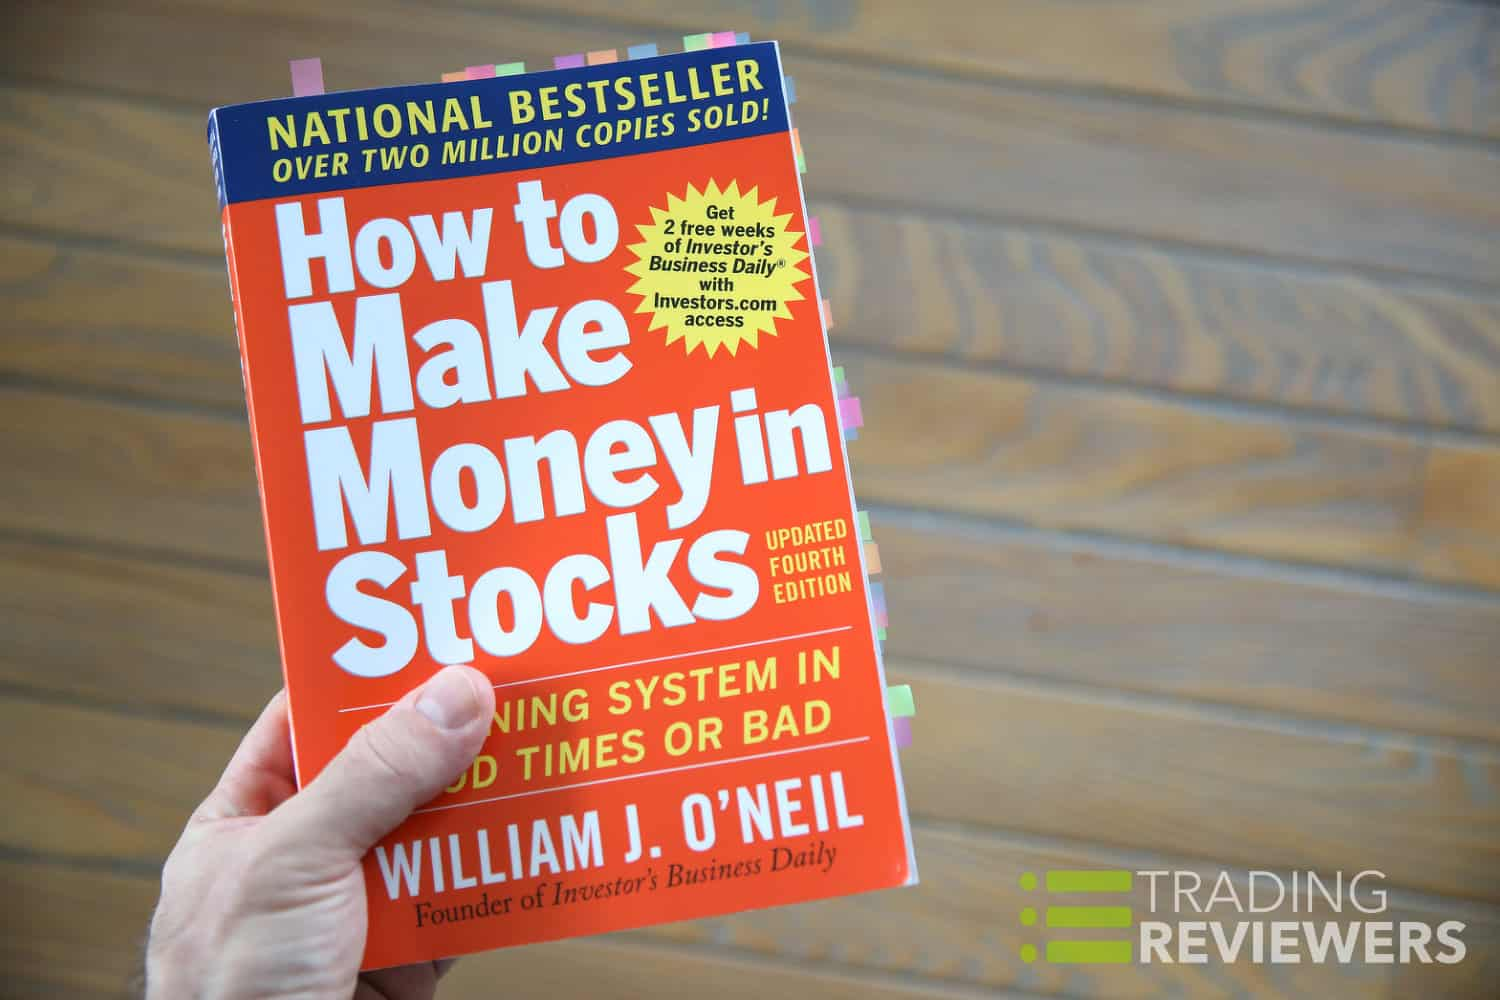 How to Make Money in Stocks Book Review